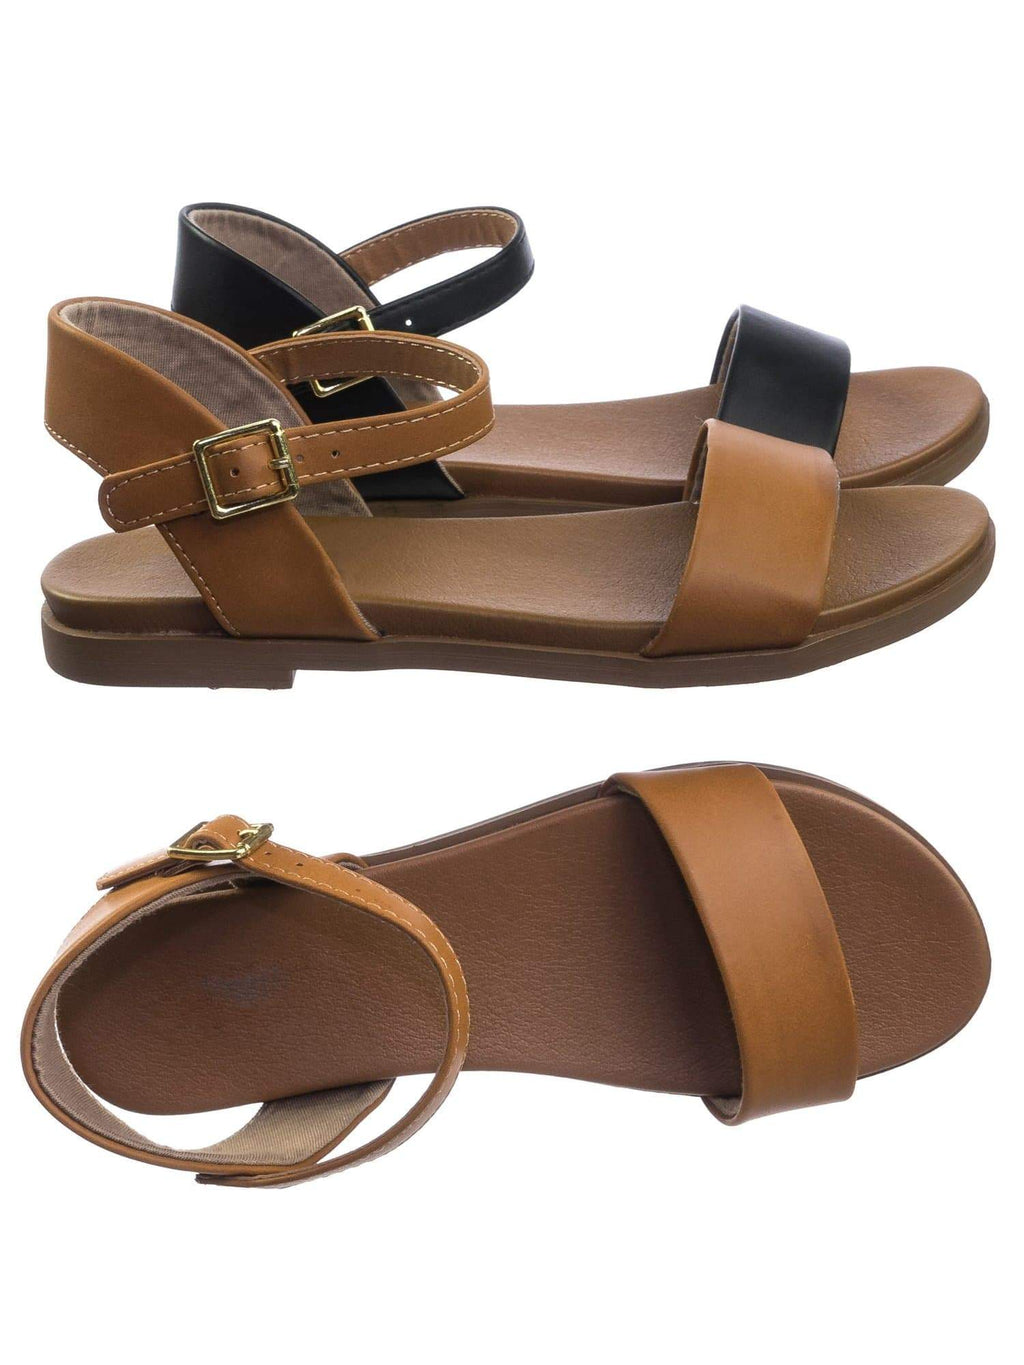 Meadow TanPu Super Comfortable Flexible Soft Rubber Padded Insole Women's Flat Sandal